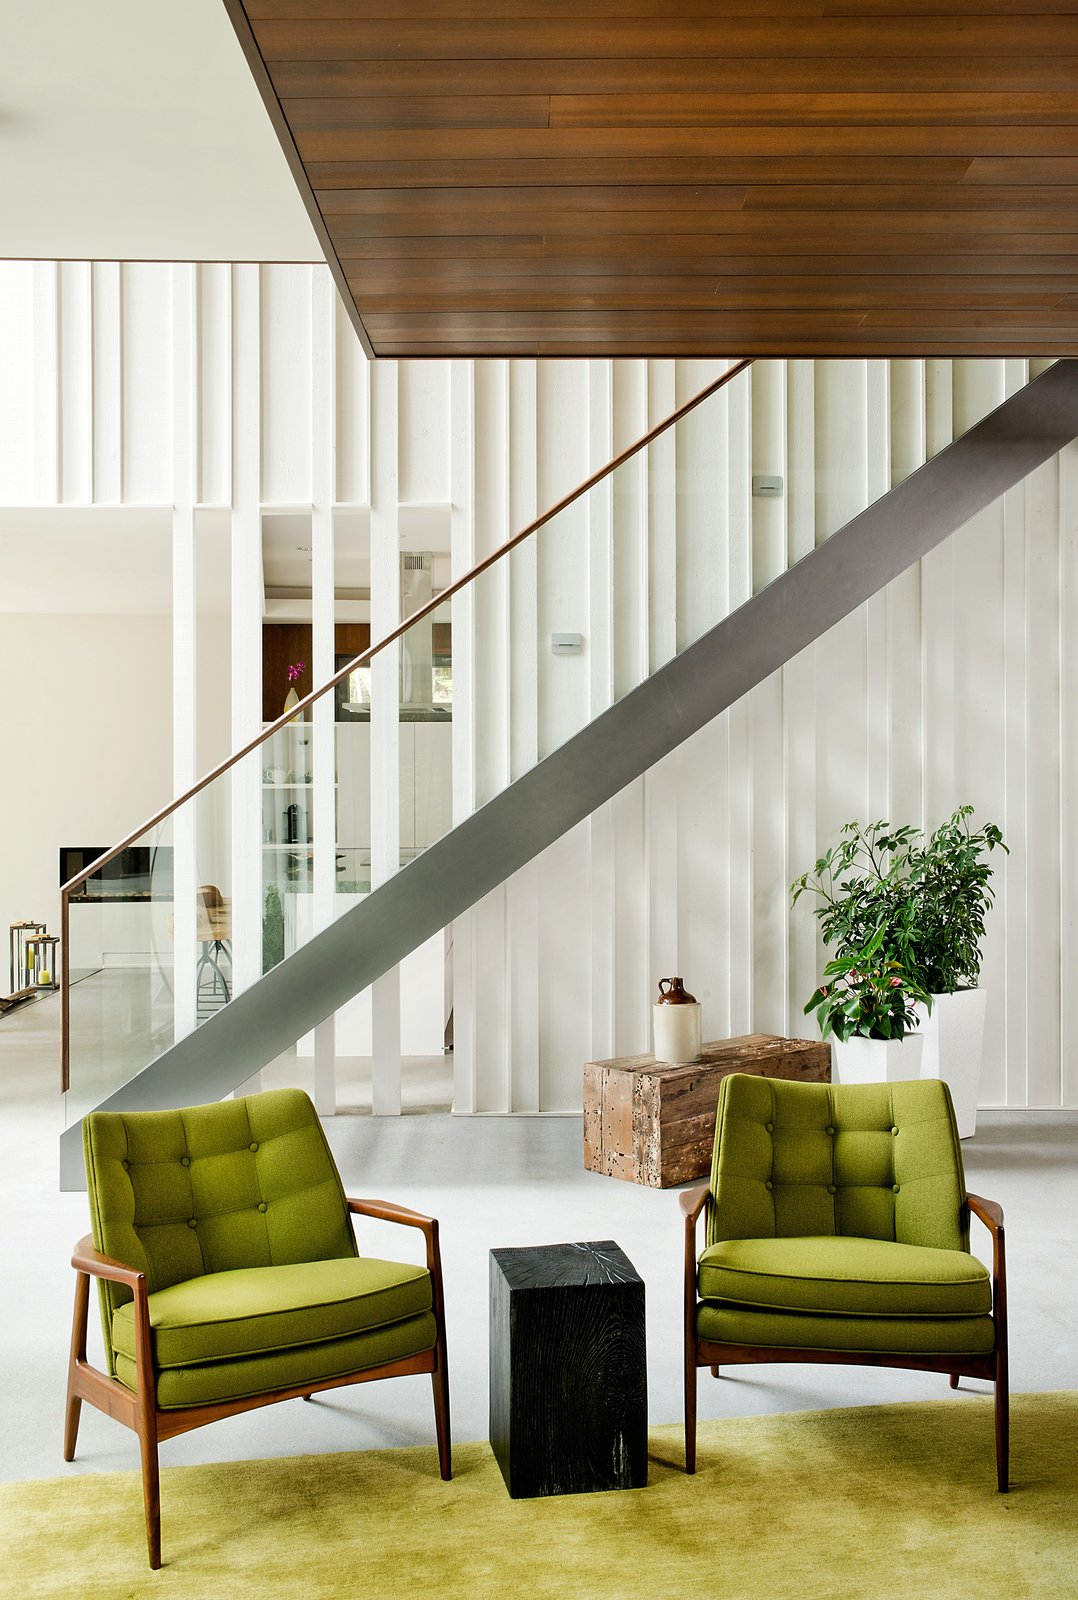 Living Room, Concrete Floor, Rug Floor, Chair, and Stools Raw wood planks were painted white and fitted next to a staircase and banister by Bättig Design. Matching chairs by Thayer Coggin sit atop a Crate and Barrel rug.  Chalet Lac Gate by Kelly Dawson